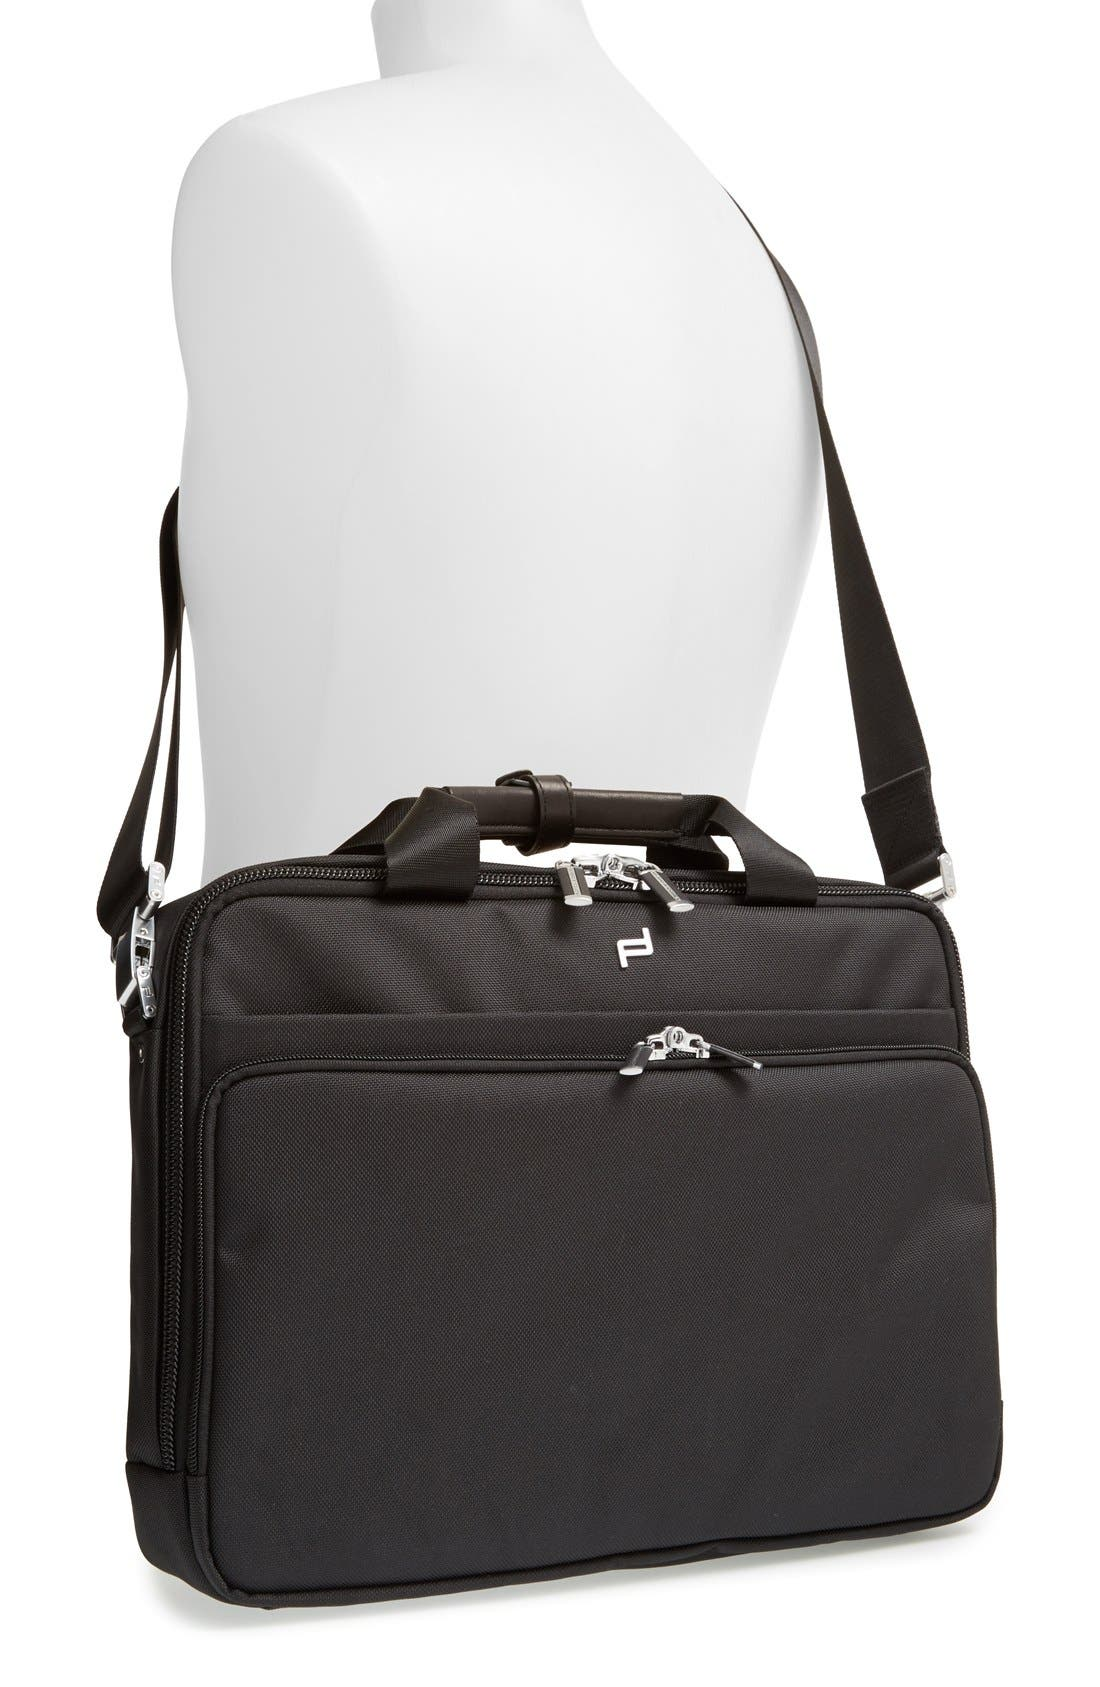 Roadster 3.0 Briefcase,                             Alternate thumbnail 2, color,                             001